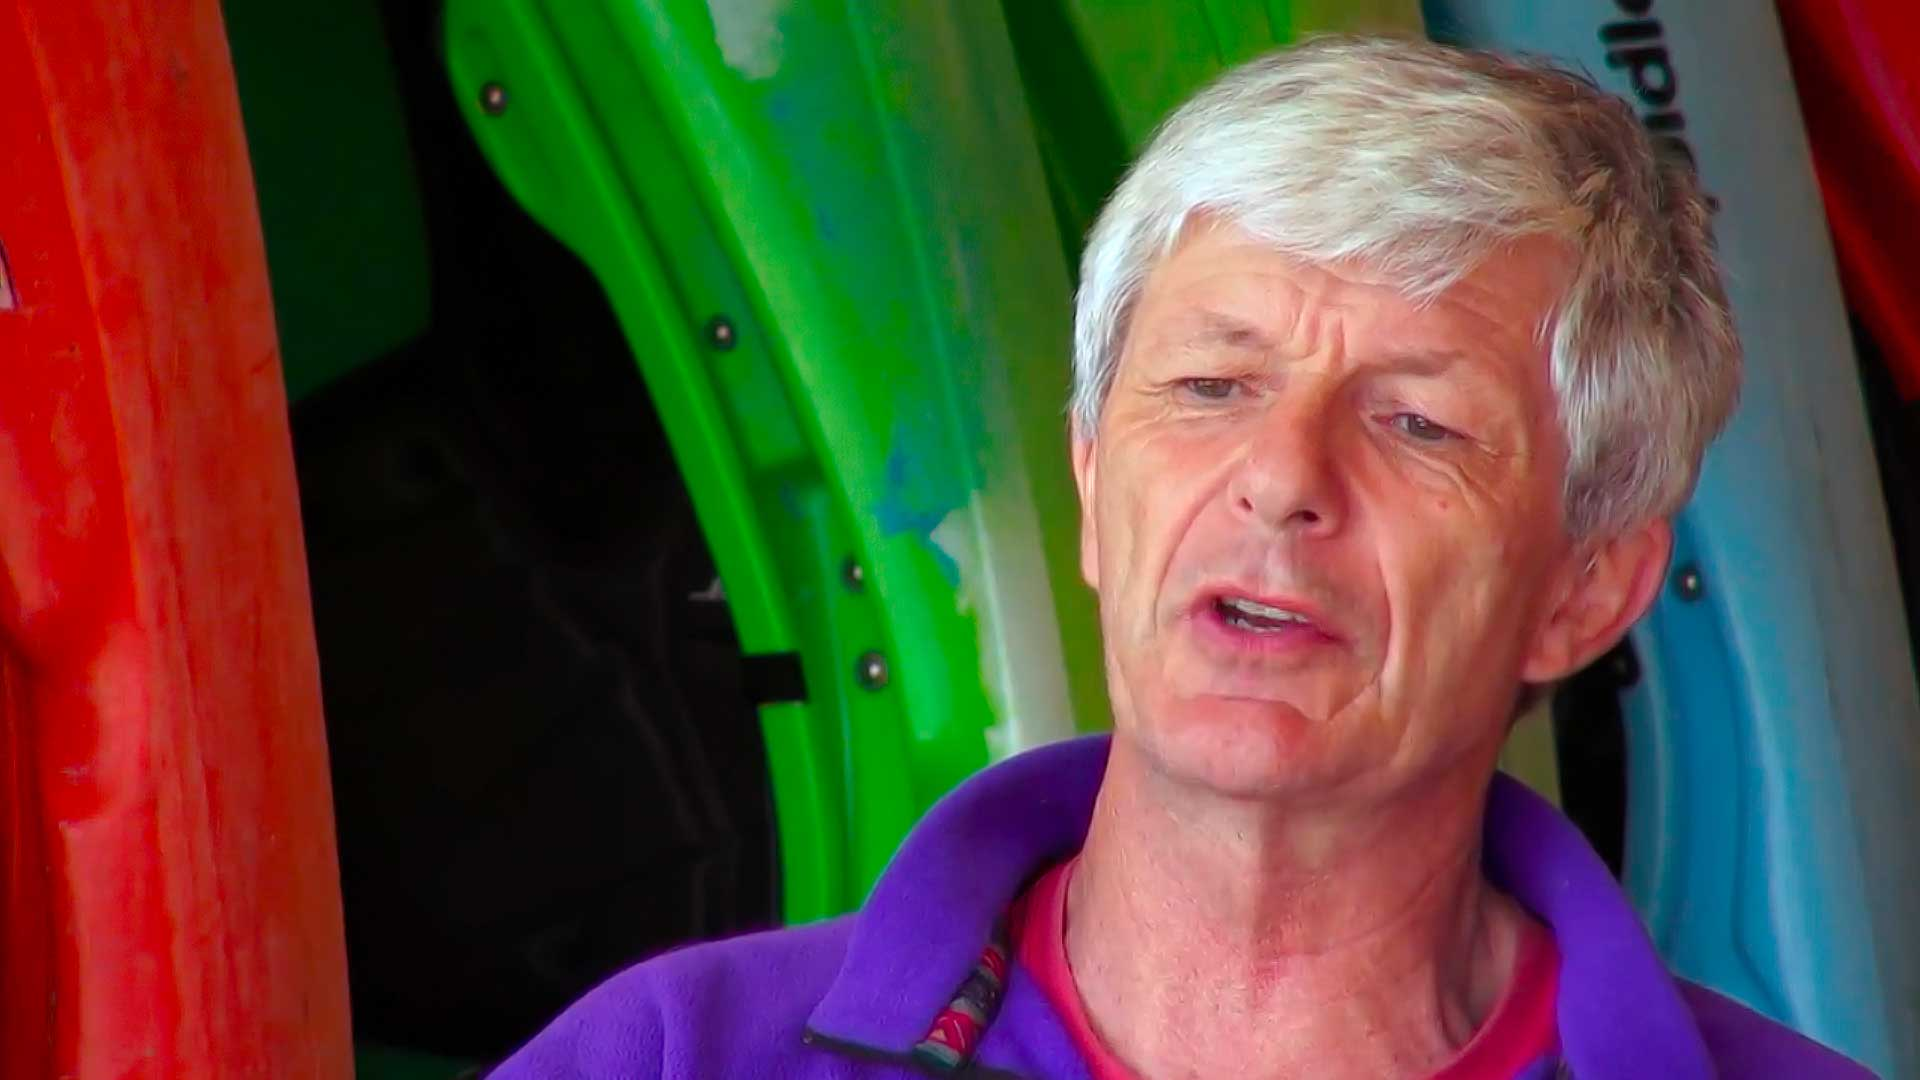 Kayaking legend Mick Hopkinson being interviewed for the documentary